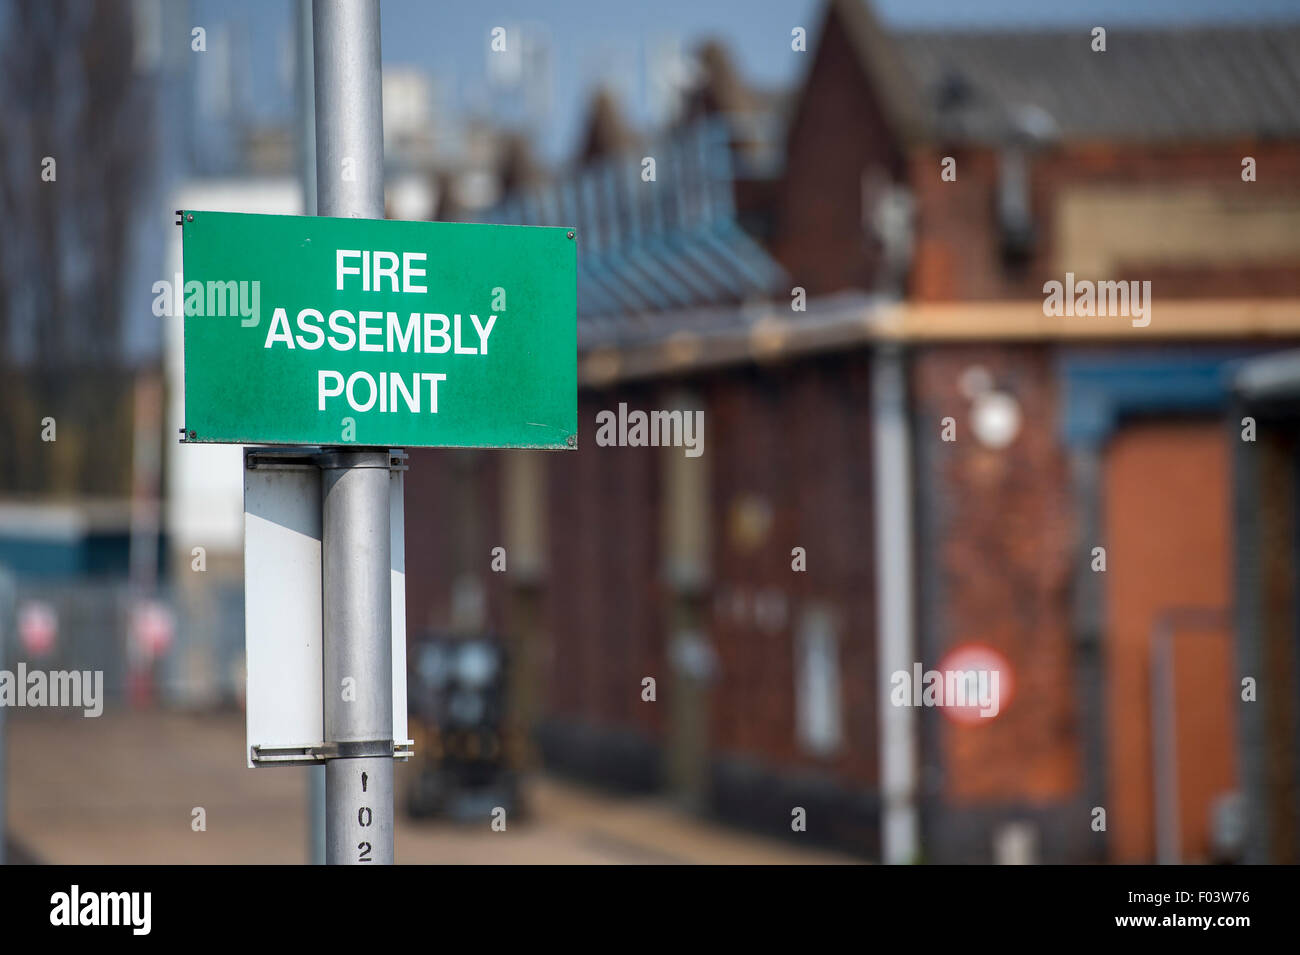 Fire Assembly Point sign outside business premises in England. - Stock Image